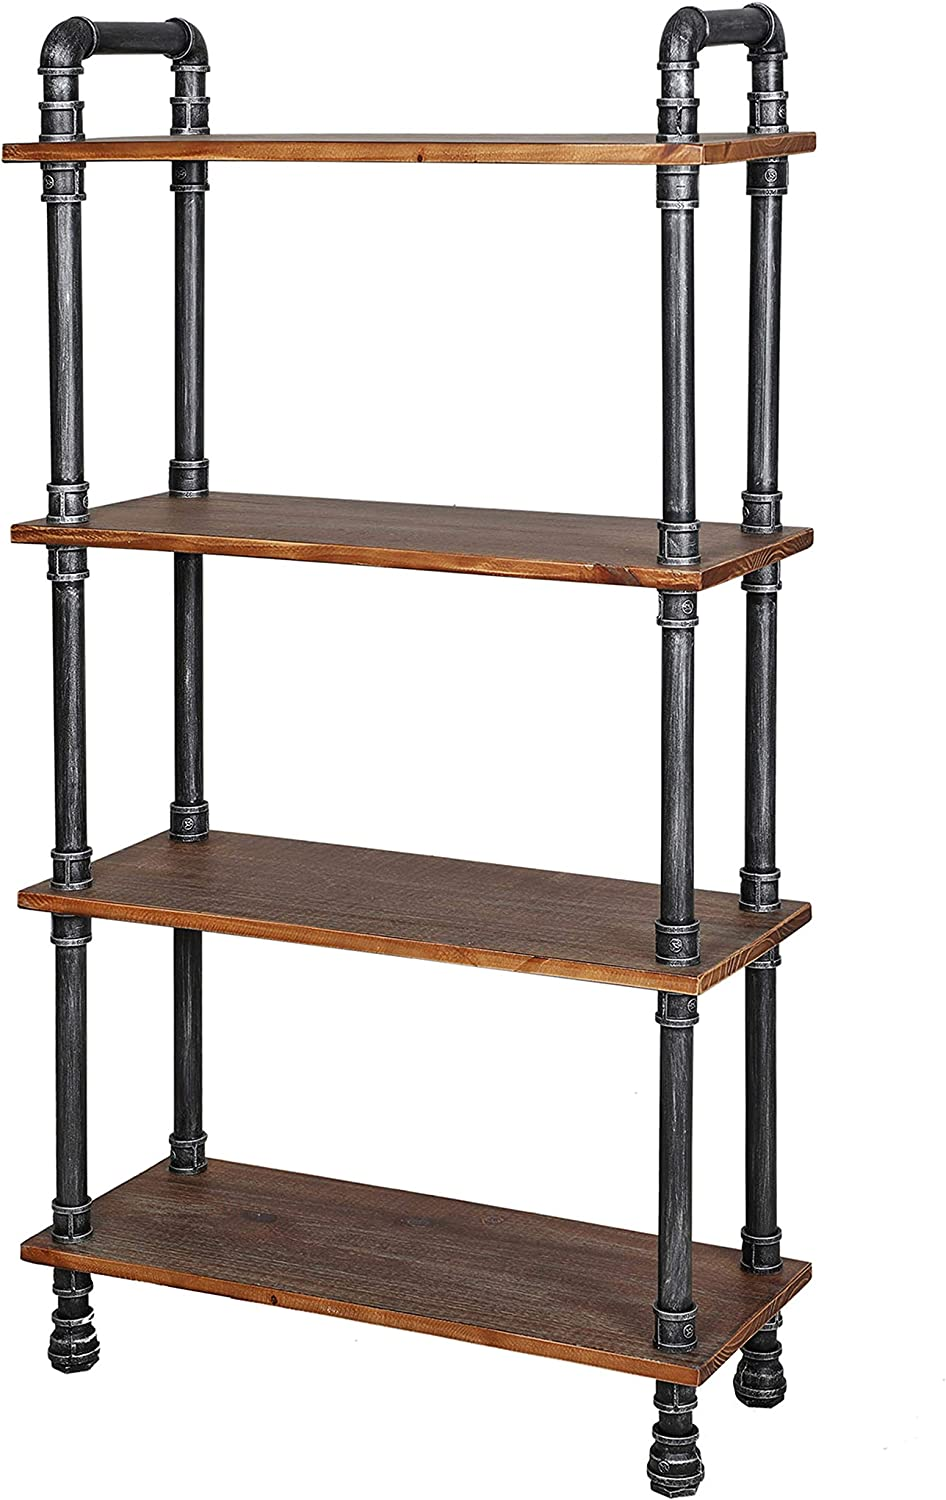 "Barnyard Designs Furniture 4-Tier Bookcase, Solid Pine Open Wood Shelves, Rustic Modern Industrial Metal and Wood Style Bookshelf, 55"" x 29.5"" x 11.5"""